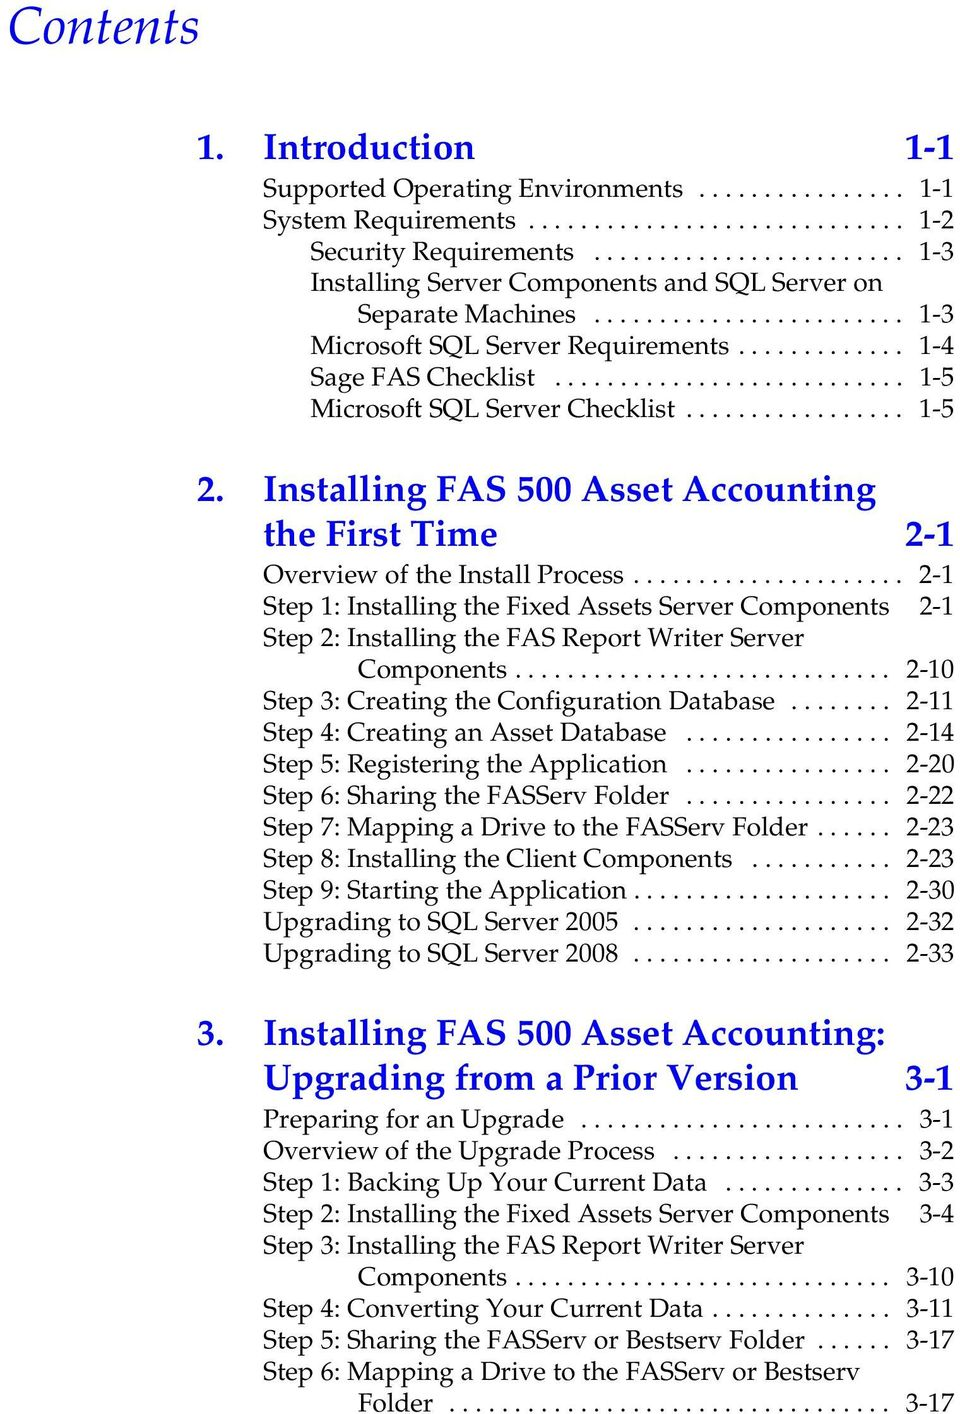 .......................... 1-5 Microsoft SQL Server Checklist................. 1-5 2. Installing FAS 500 Asset Accounting the First Time 2-1 Overview of the Install Process.